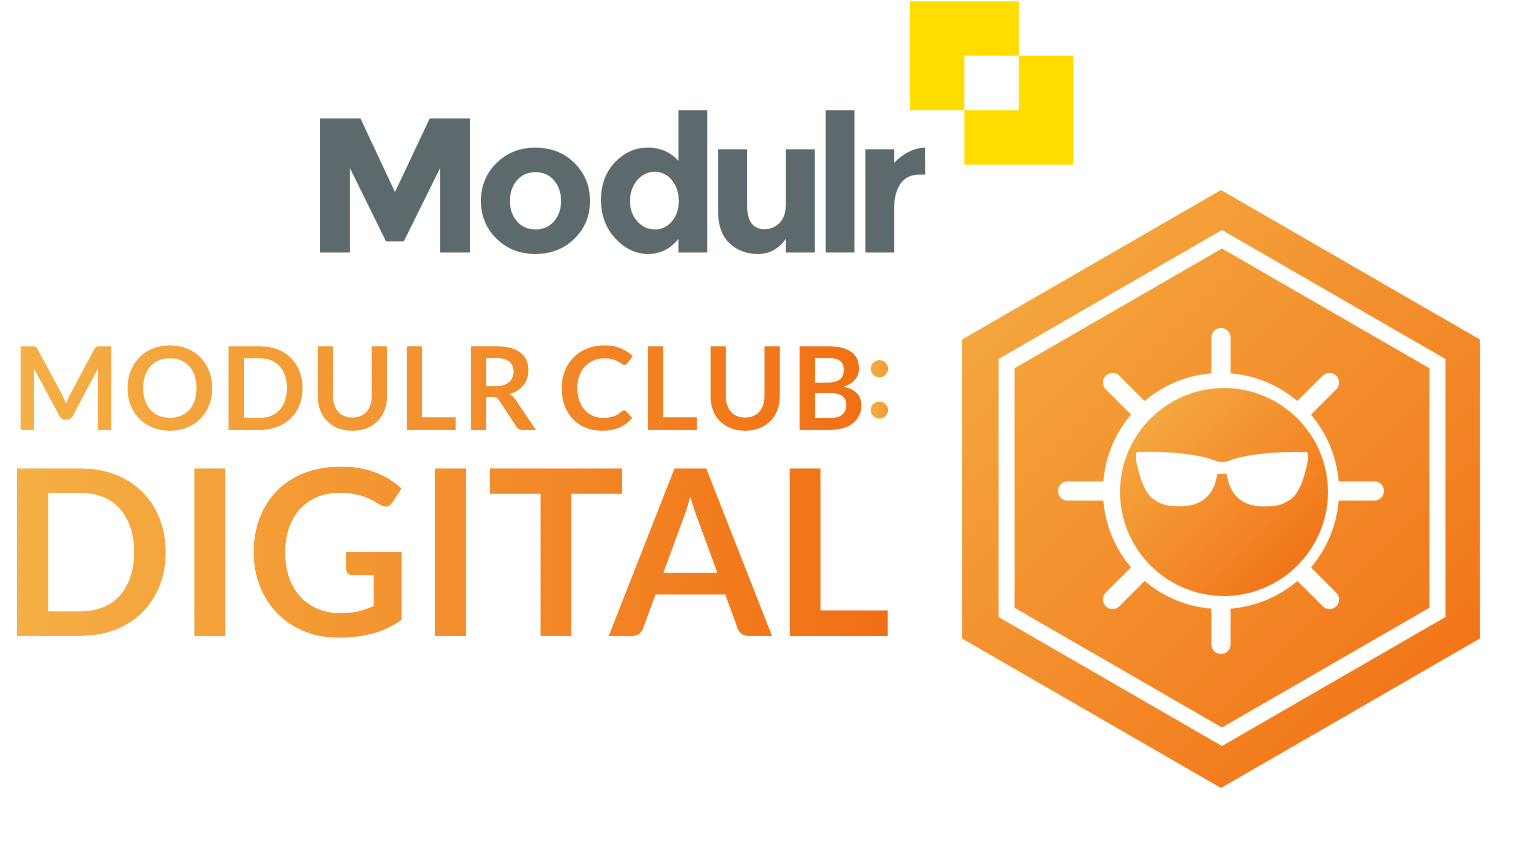 Modulr Club: Digital's Summer of Payments